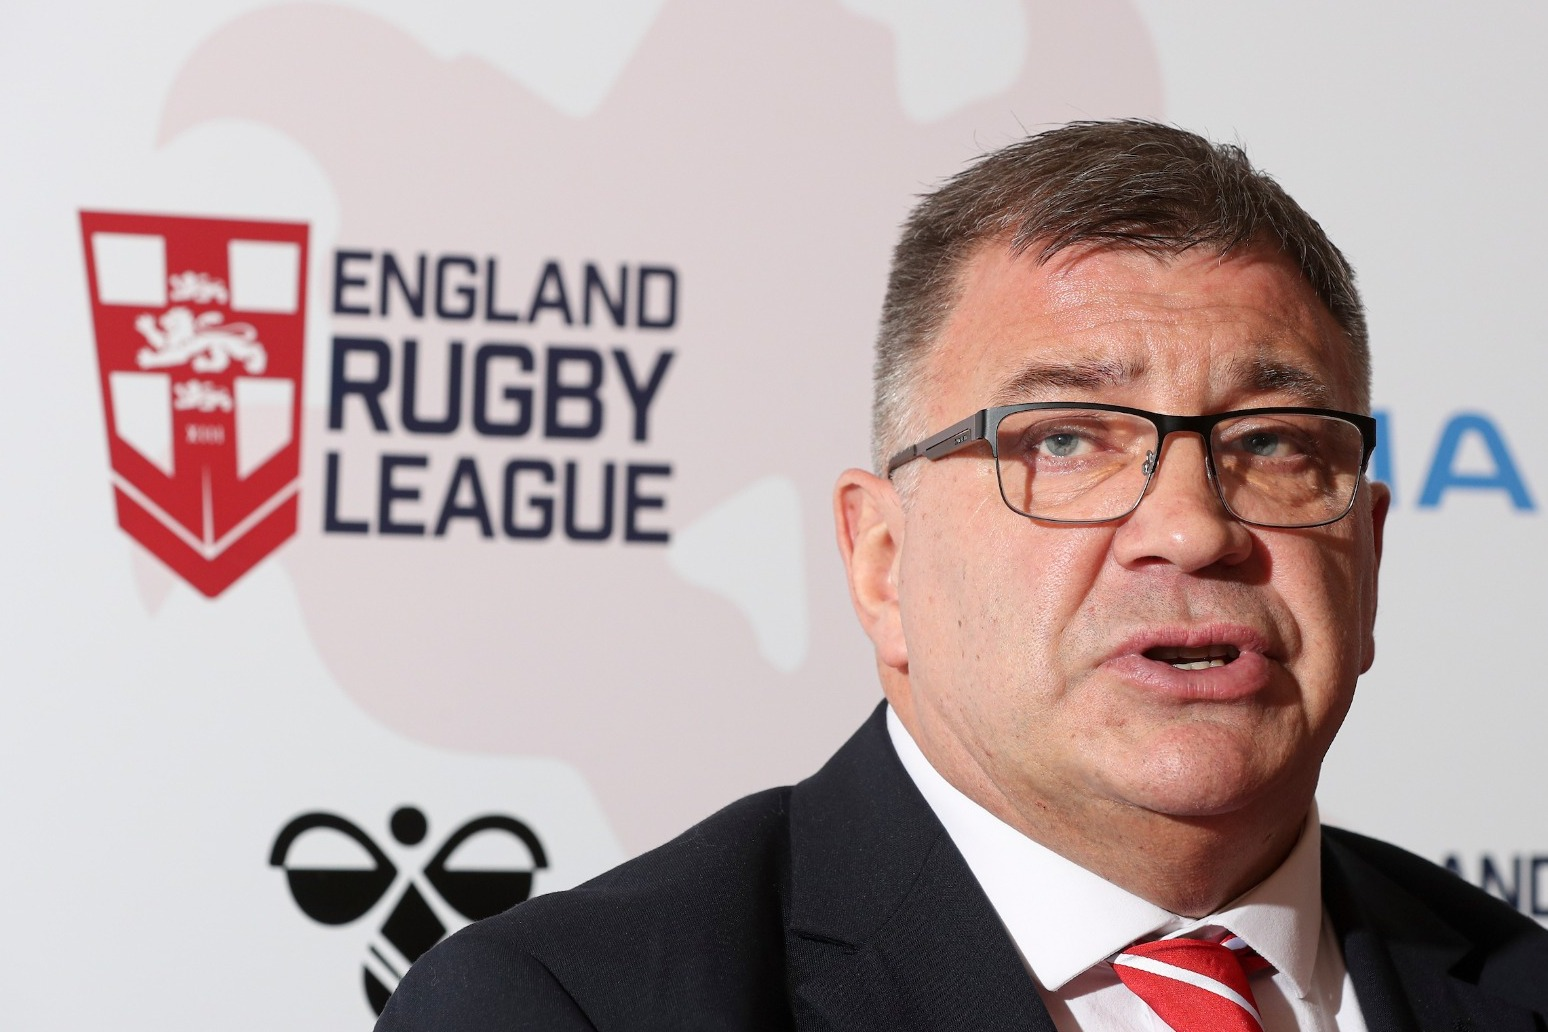 England coach Shaun Wane names unchanged squad ahead of first training session